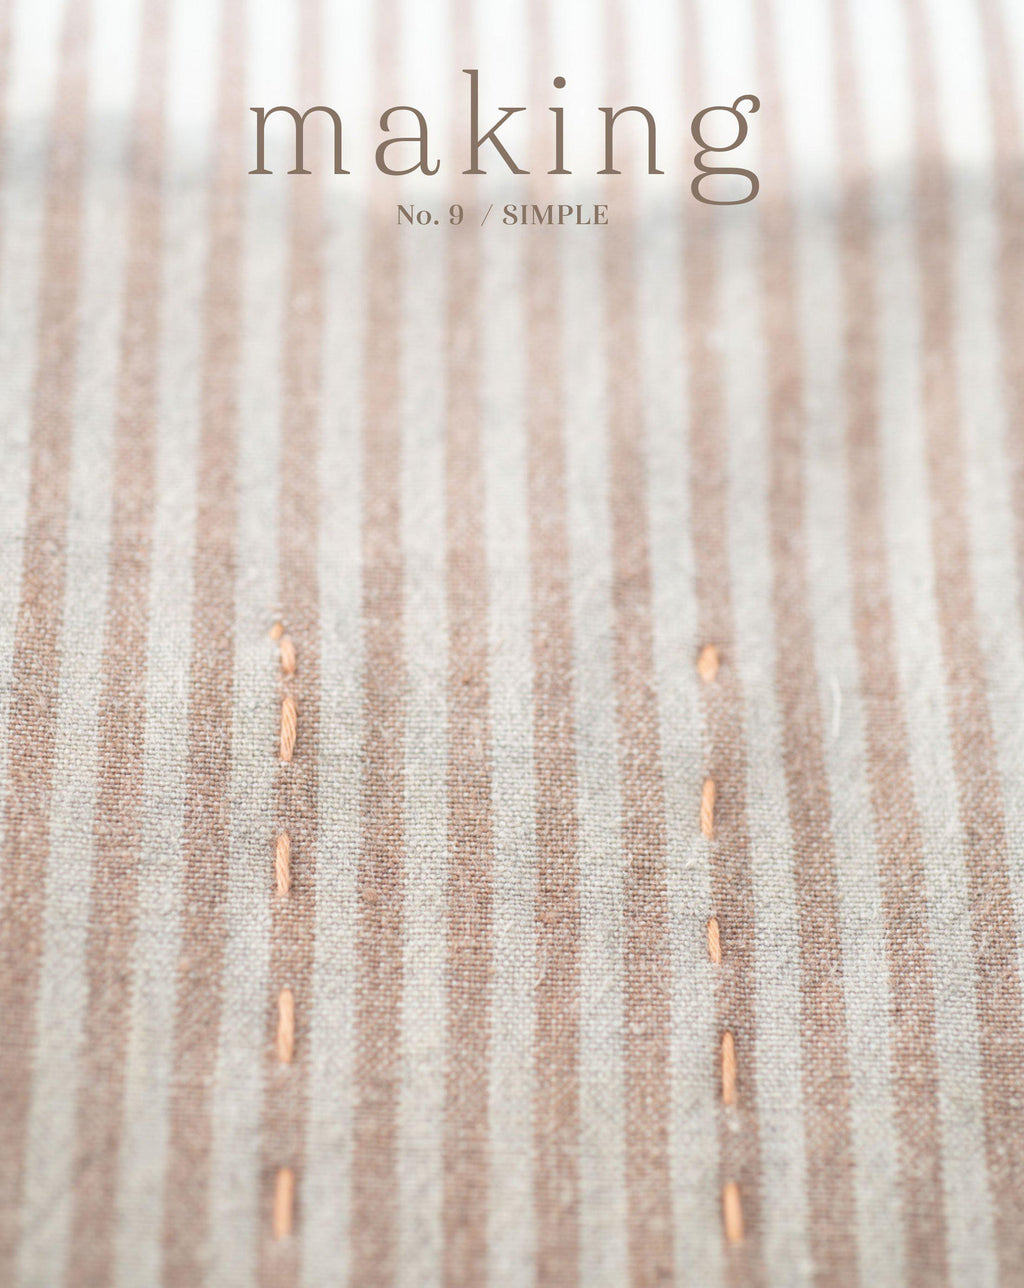 Making Magazine | No. 9 :: SIMPLE